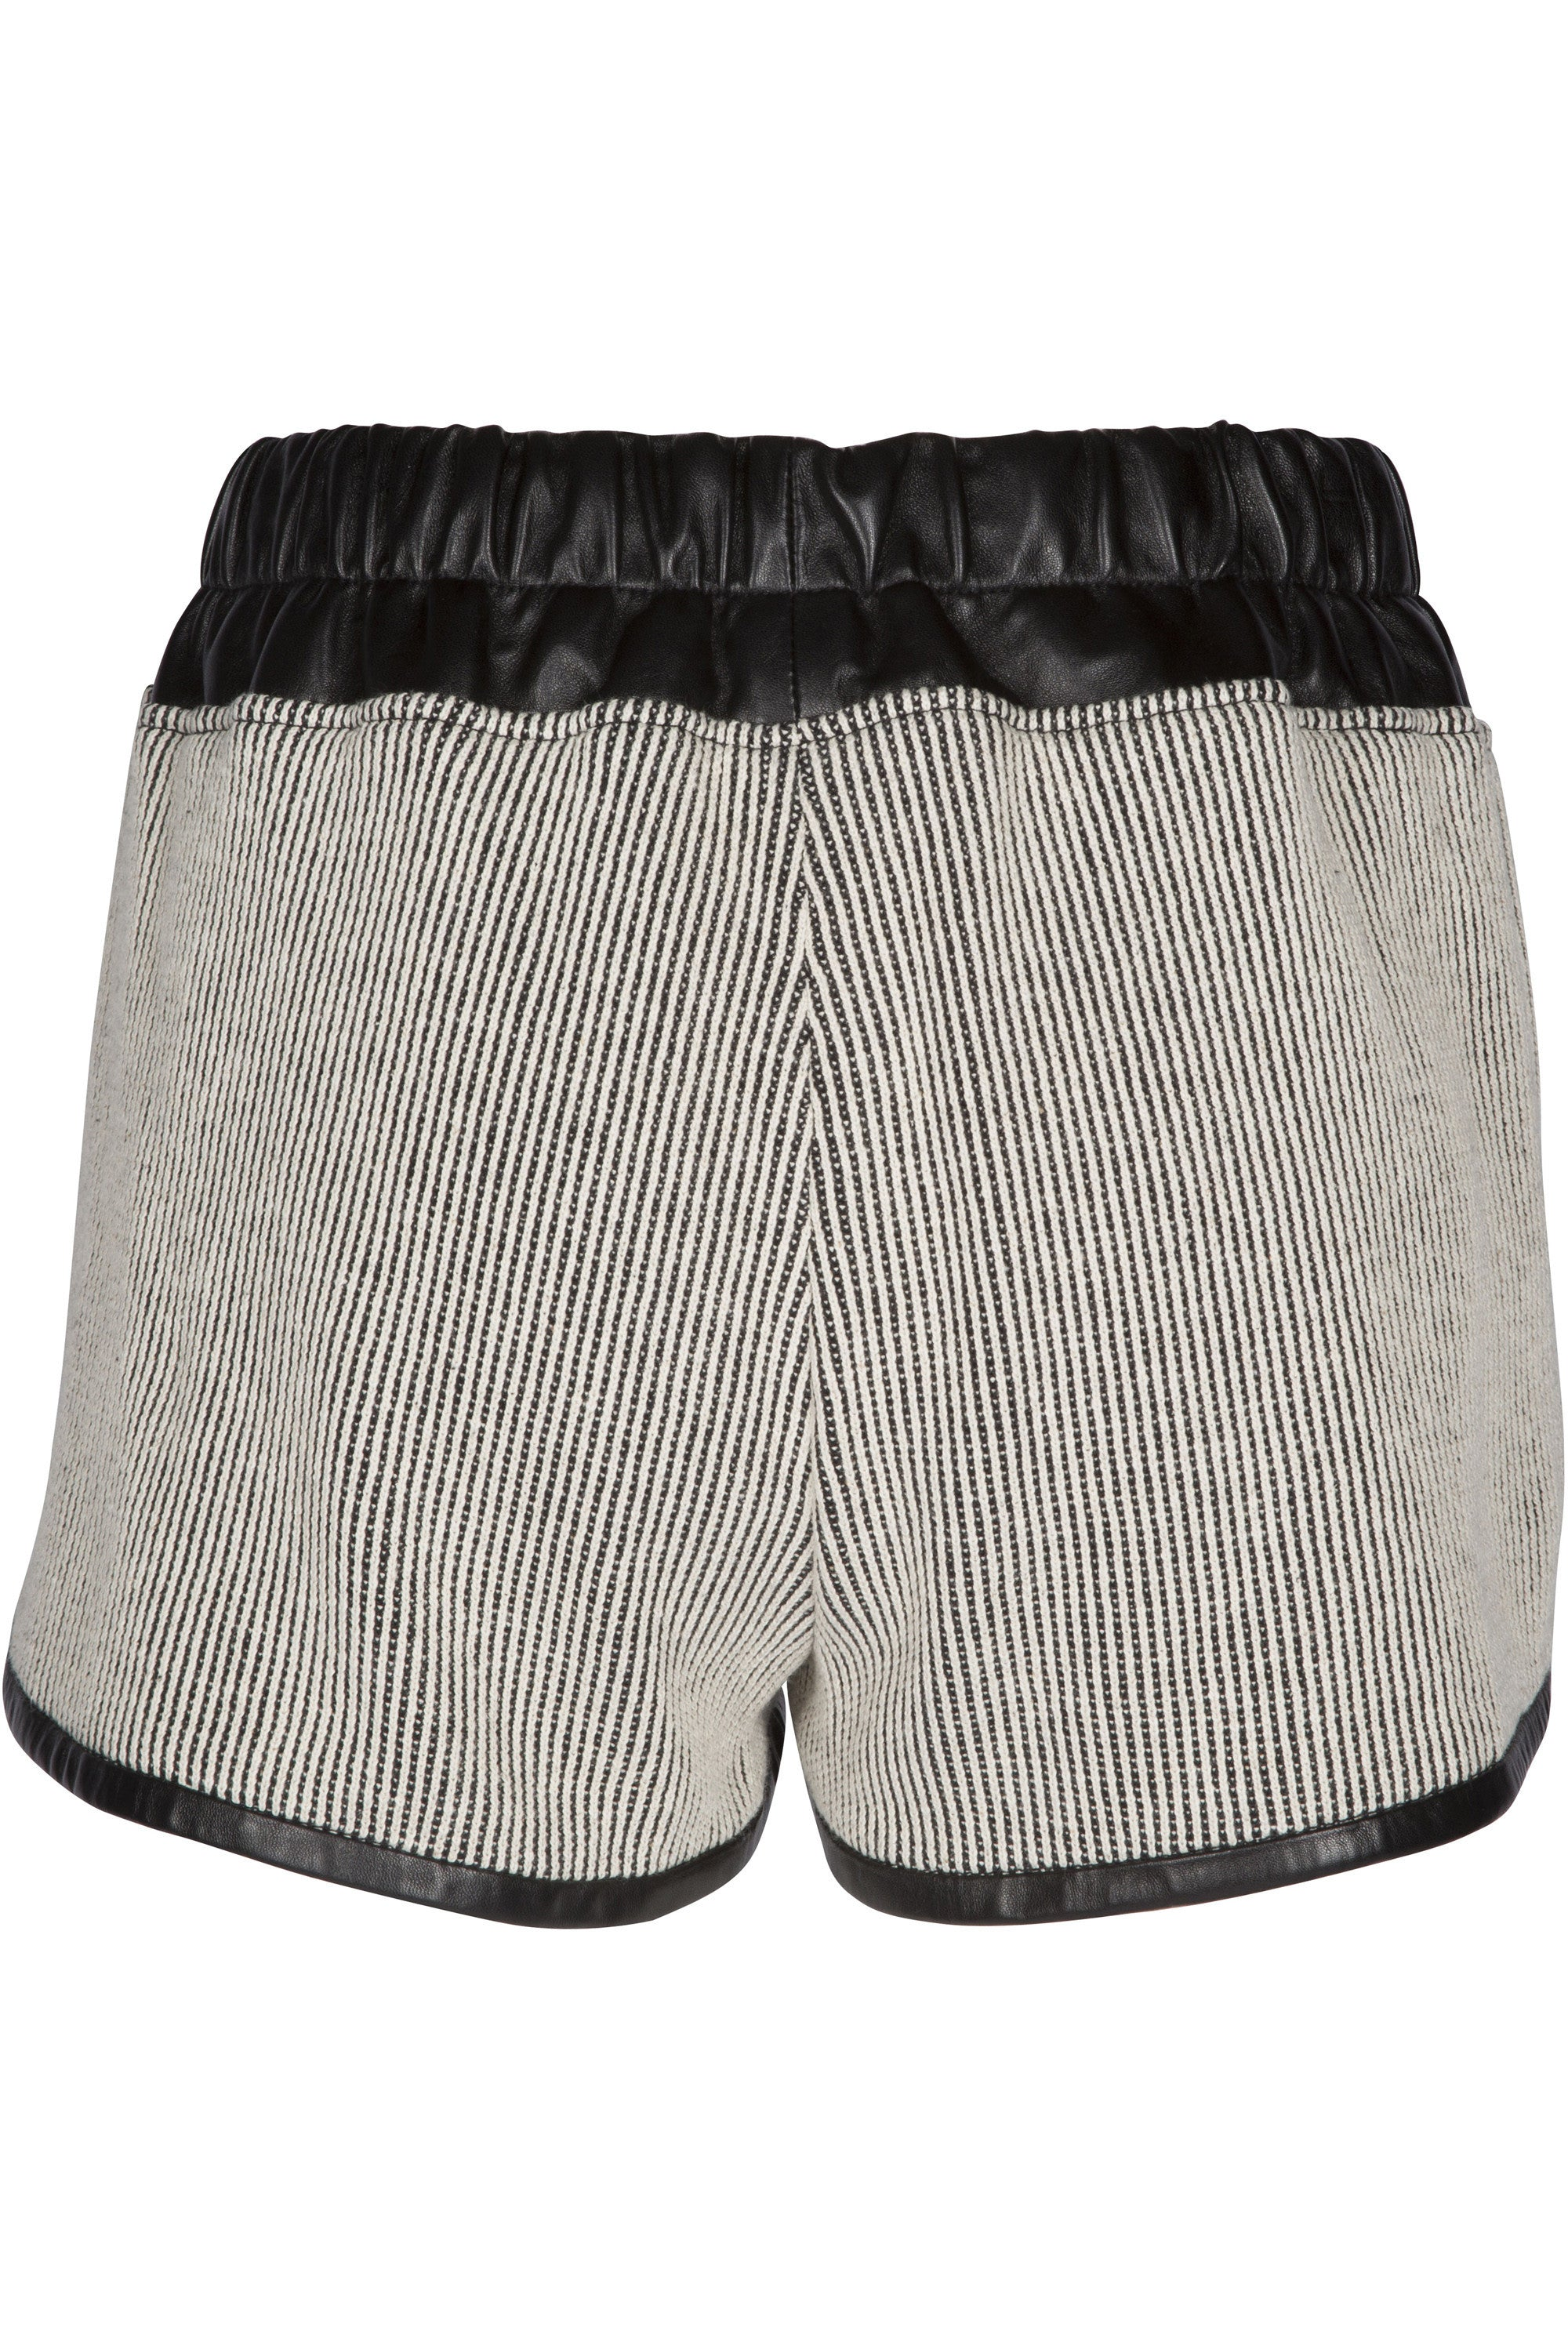 LEATHER COMBO SHORTS BOTTOMS by KENDALL + KYLIE